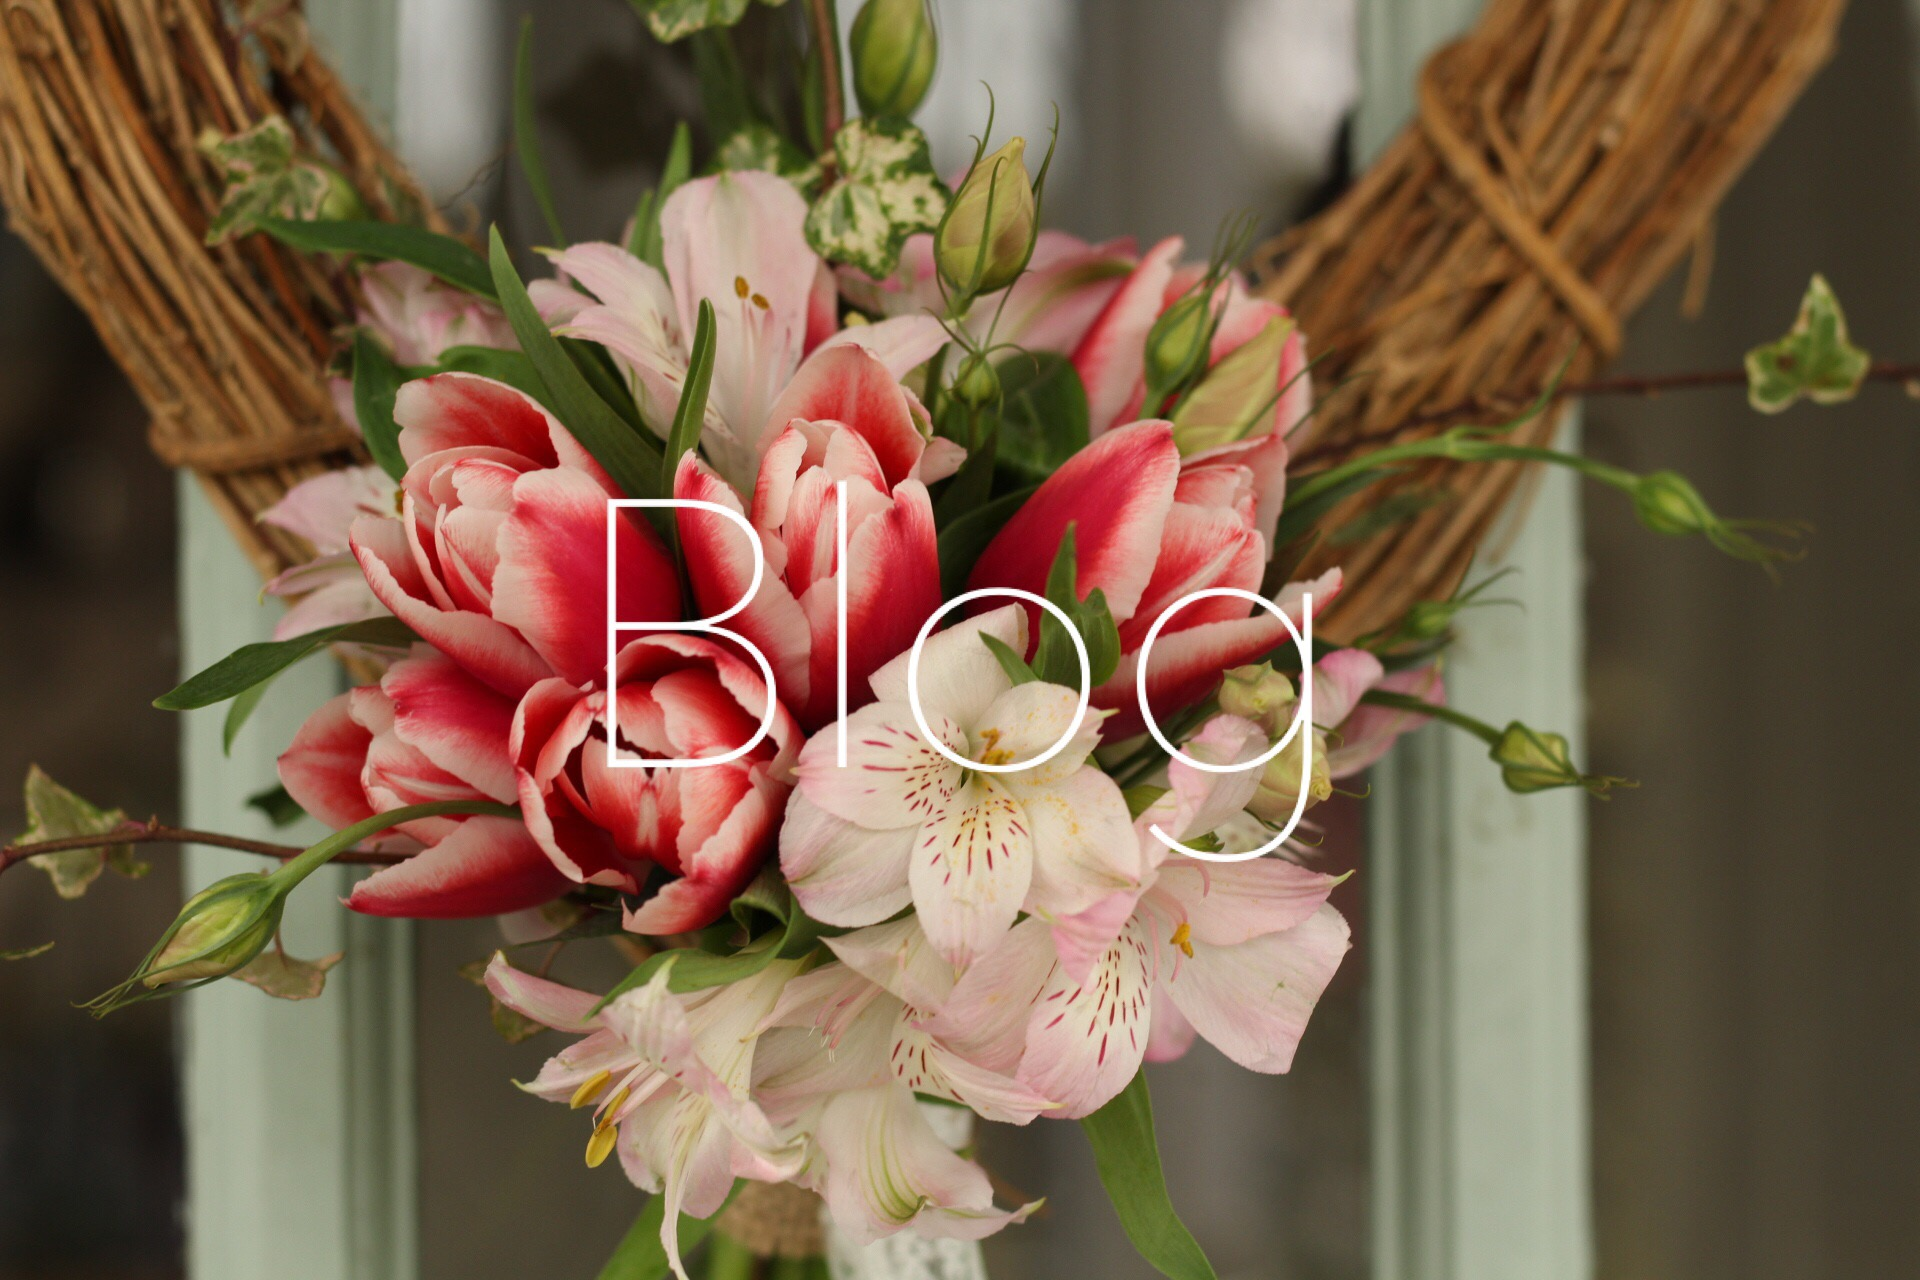 Latest News from The Flower Cottage